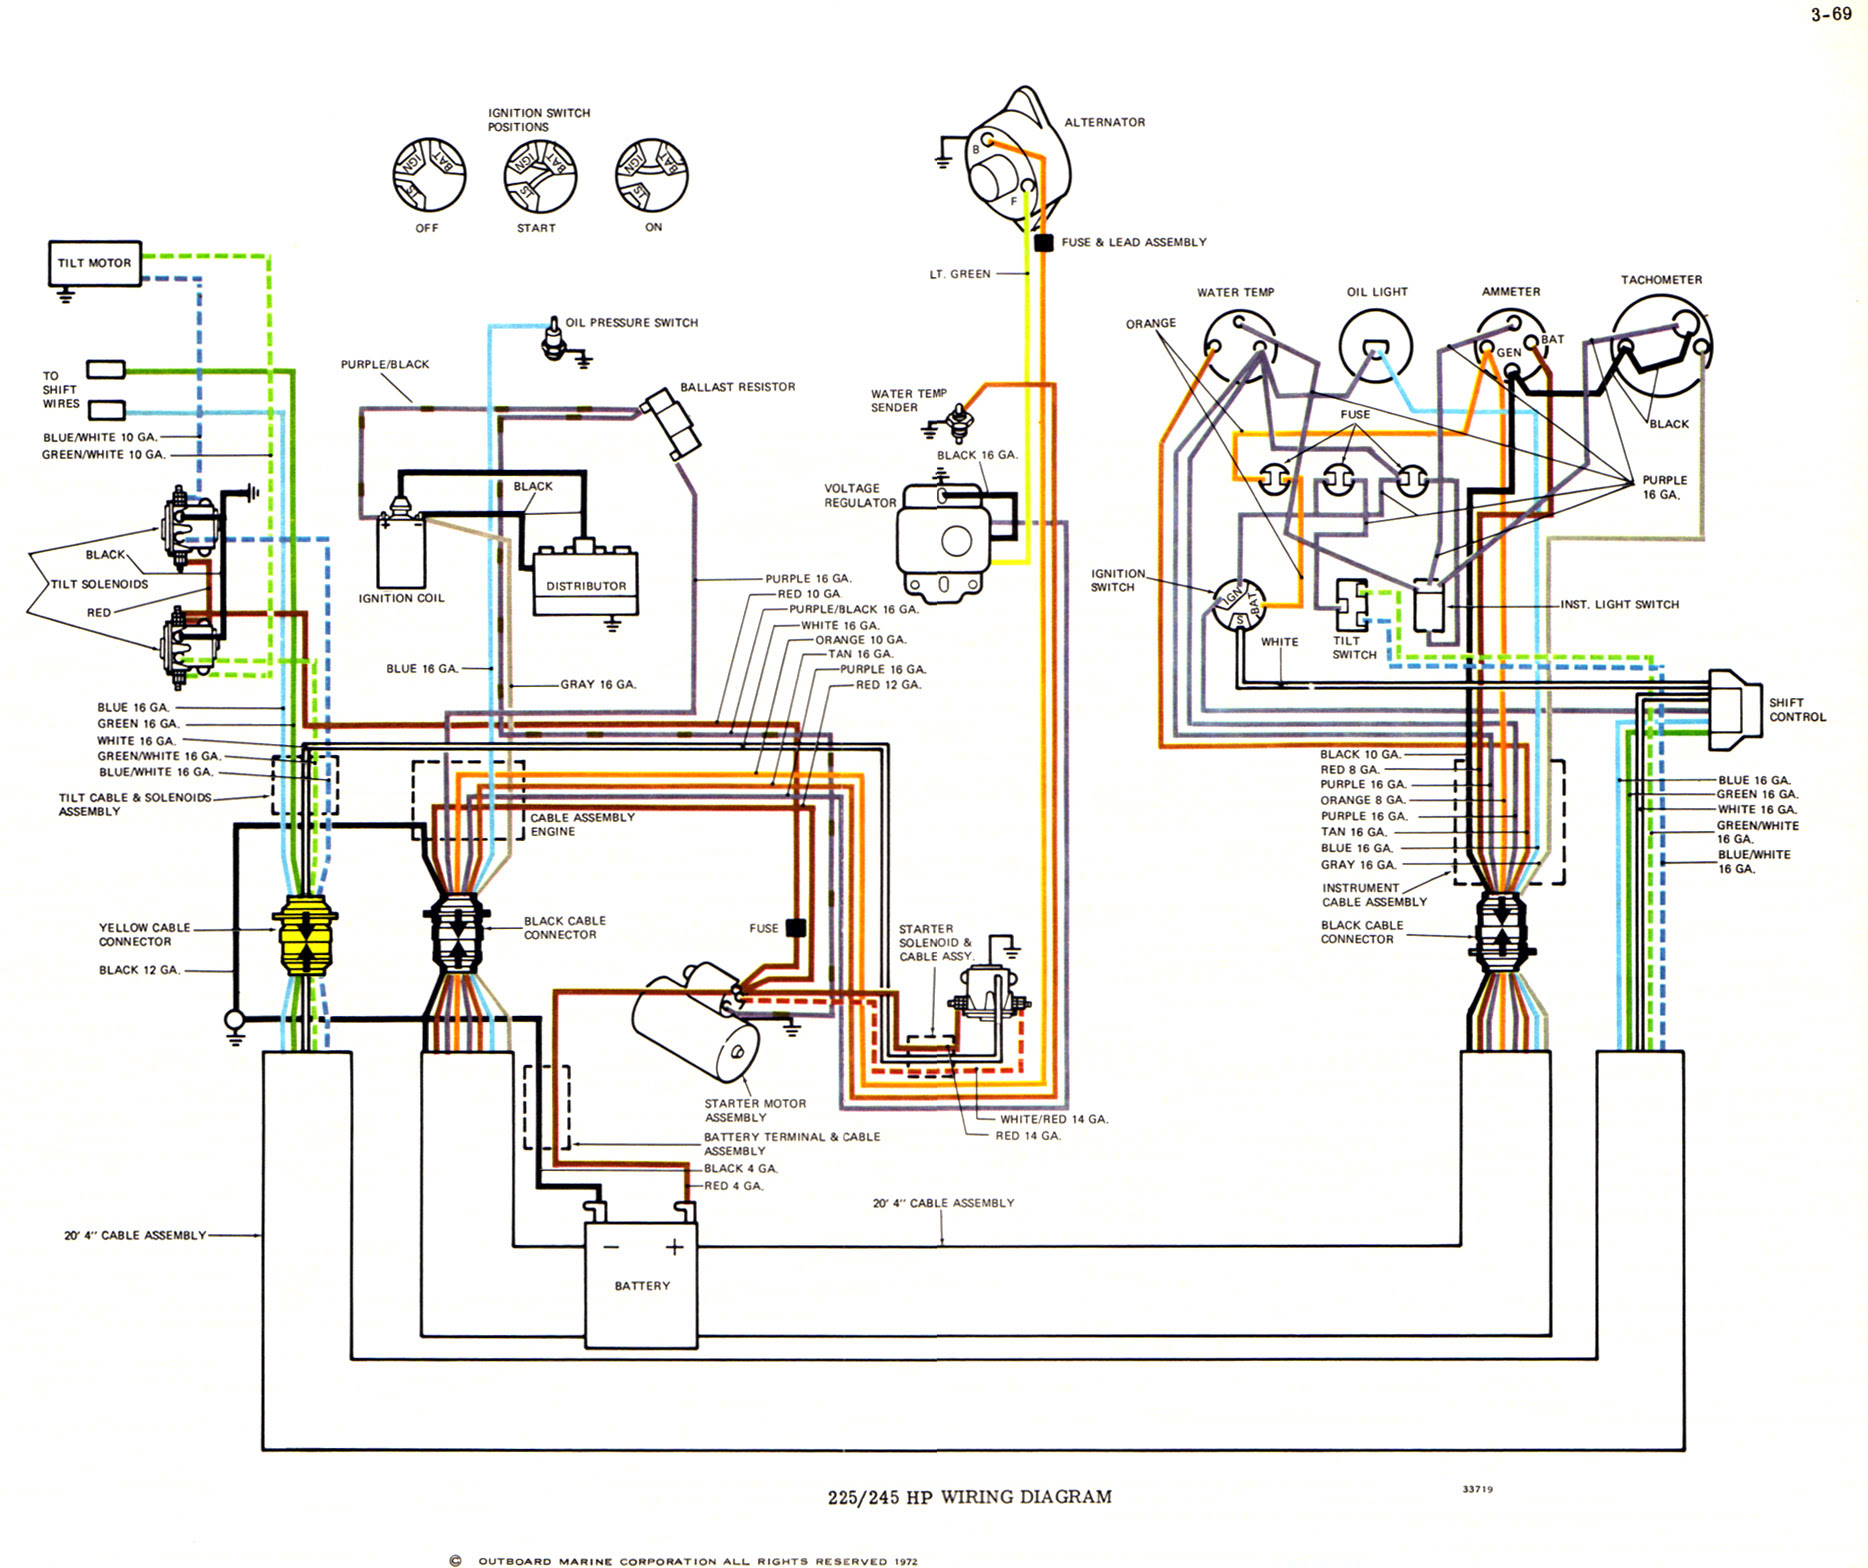 Mercruiser 4 3lx Tachometer Wiring Wiring Diagram Dedicated Dedicated Pasticceriagele It